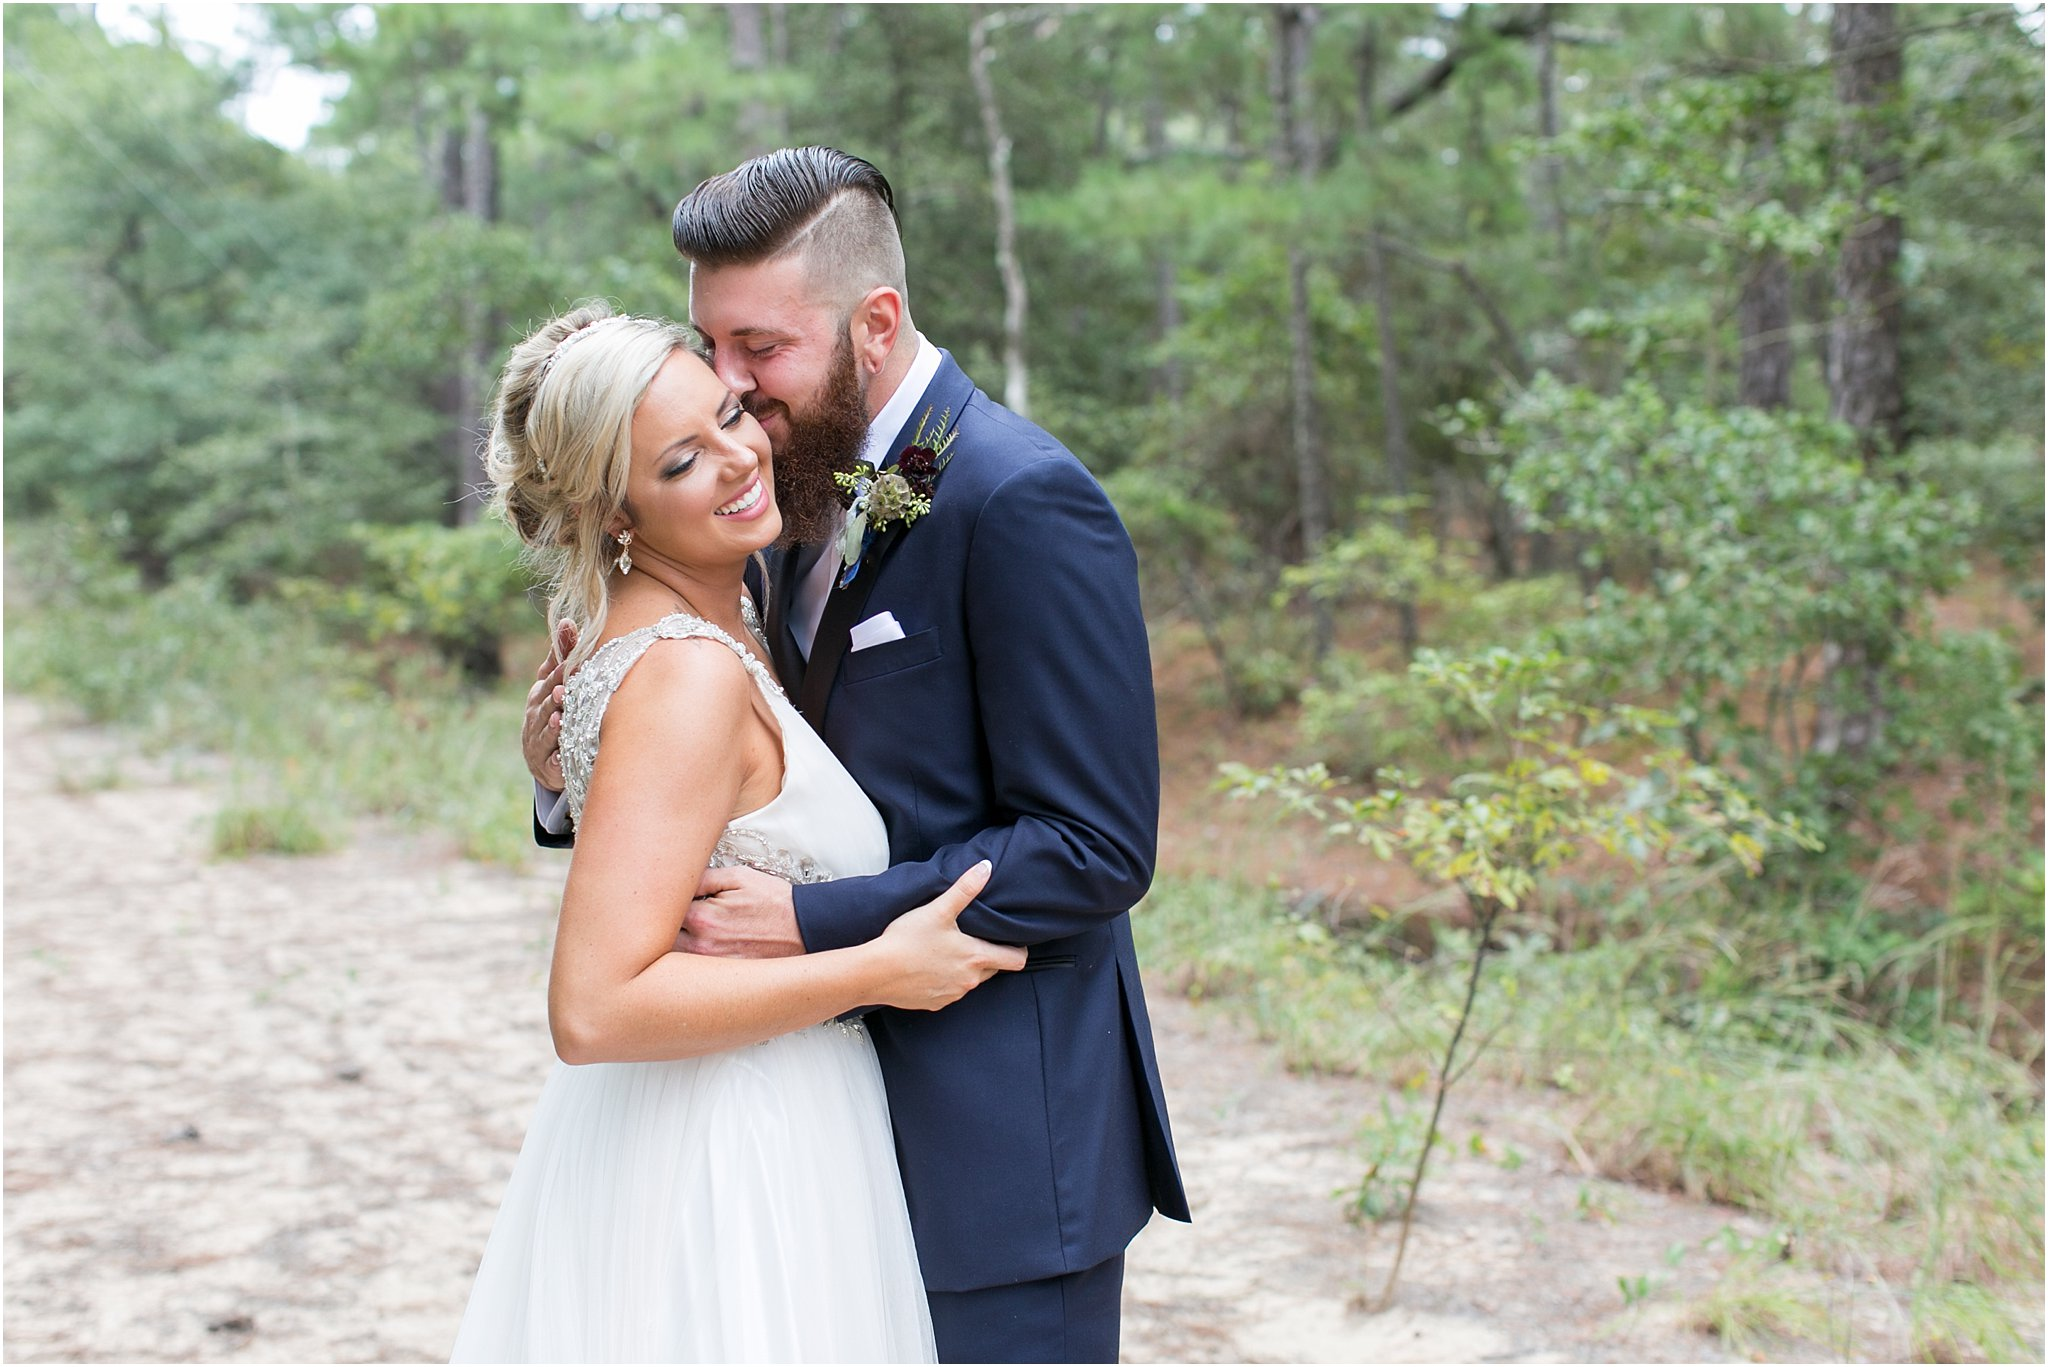 jessica_ryan_photography_virginia_wedding_photographer_candid_authentic_hampton_roads_wedding_photography_marina_shores_yacht_club_first_landing_state_park_woodland_theme_garden_3289